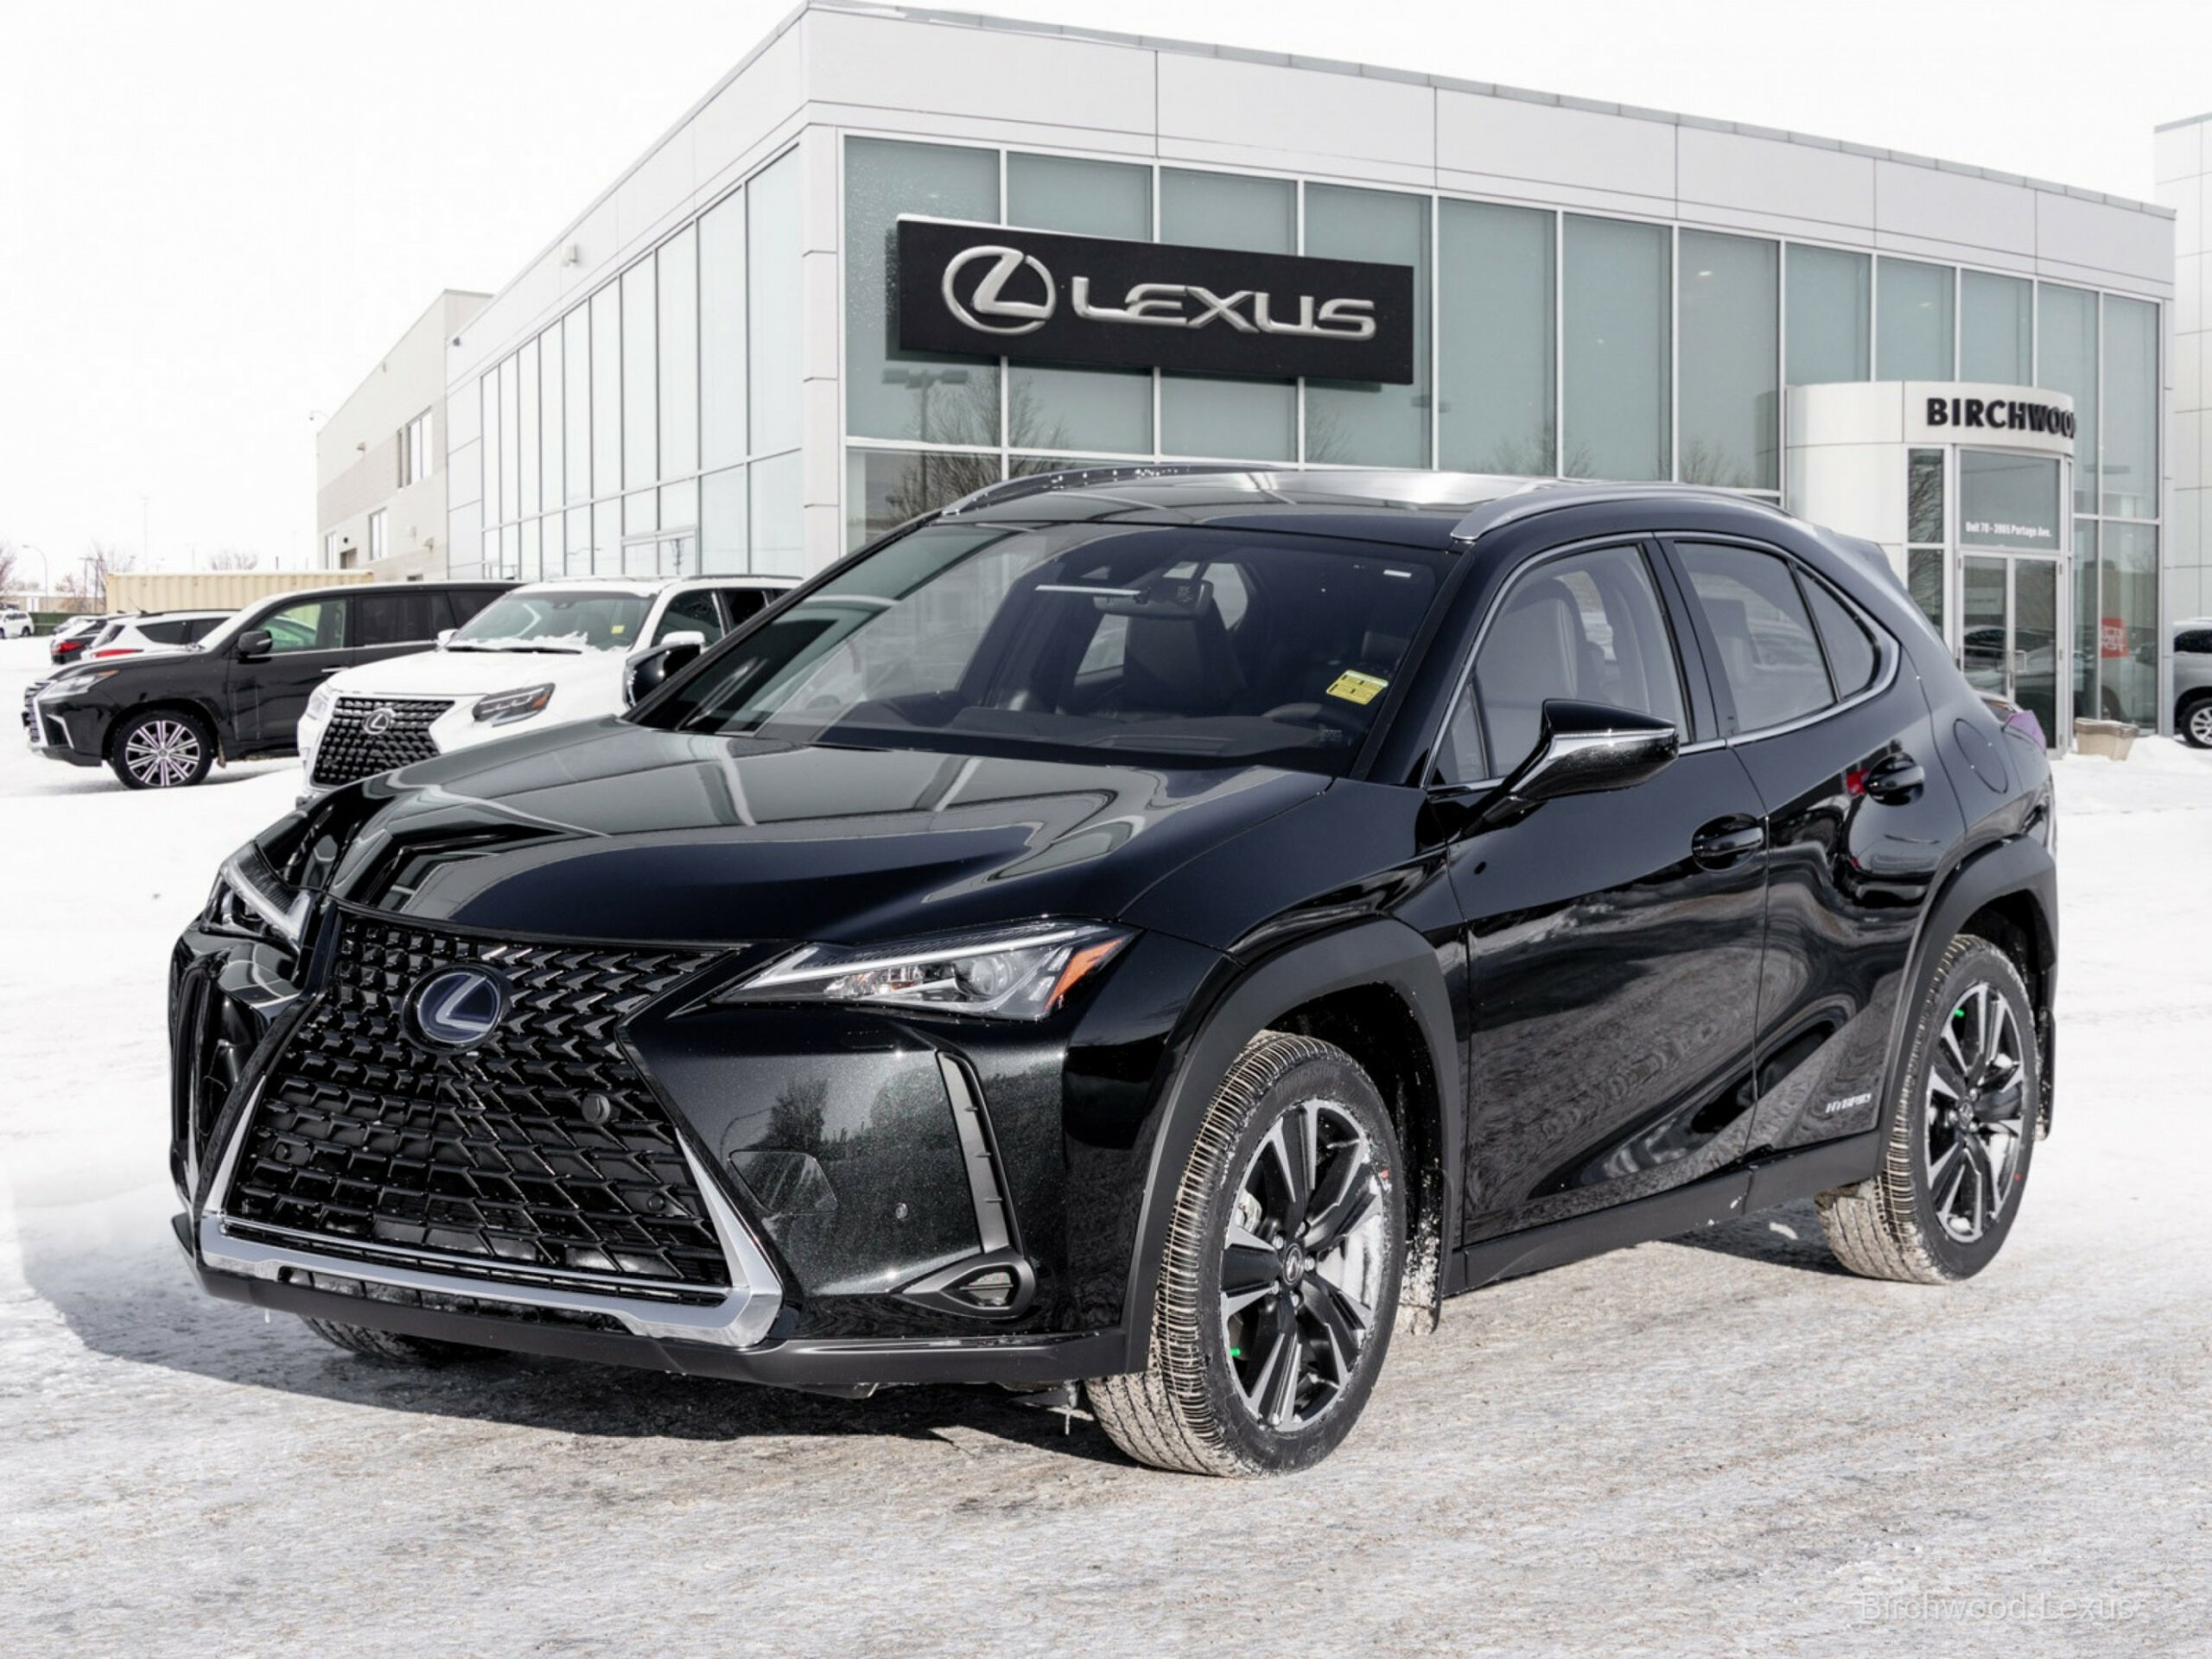 8 Lexus UX 8h Luxury, stock no. LX8 - Birchwood Lexus